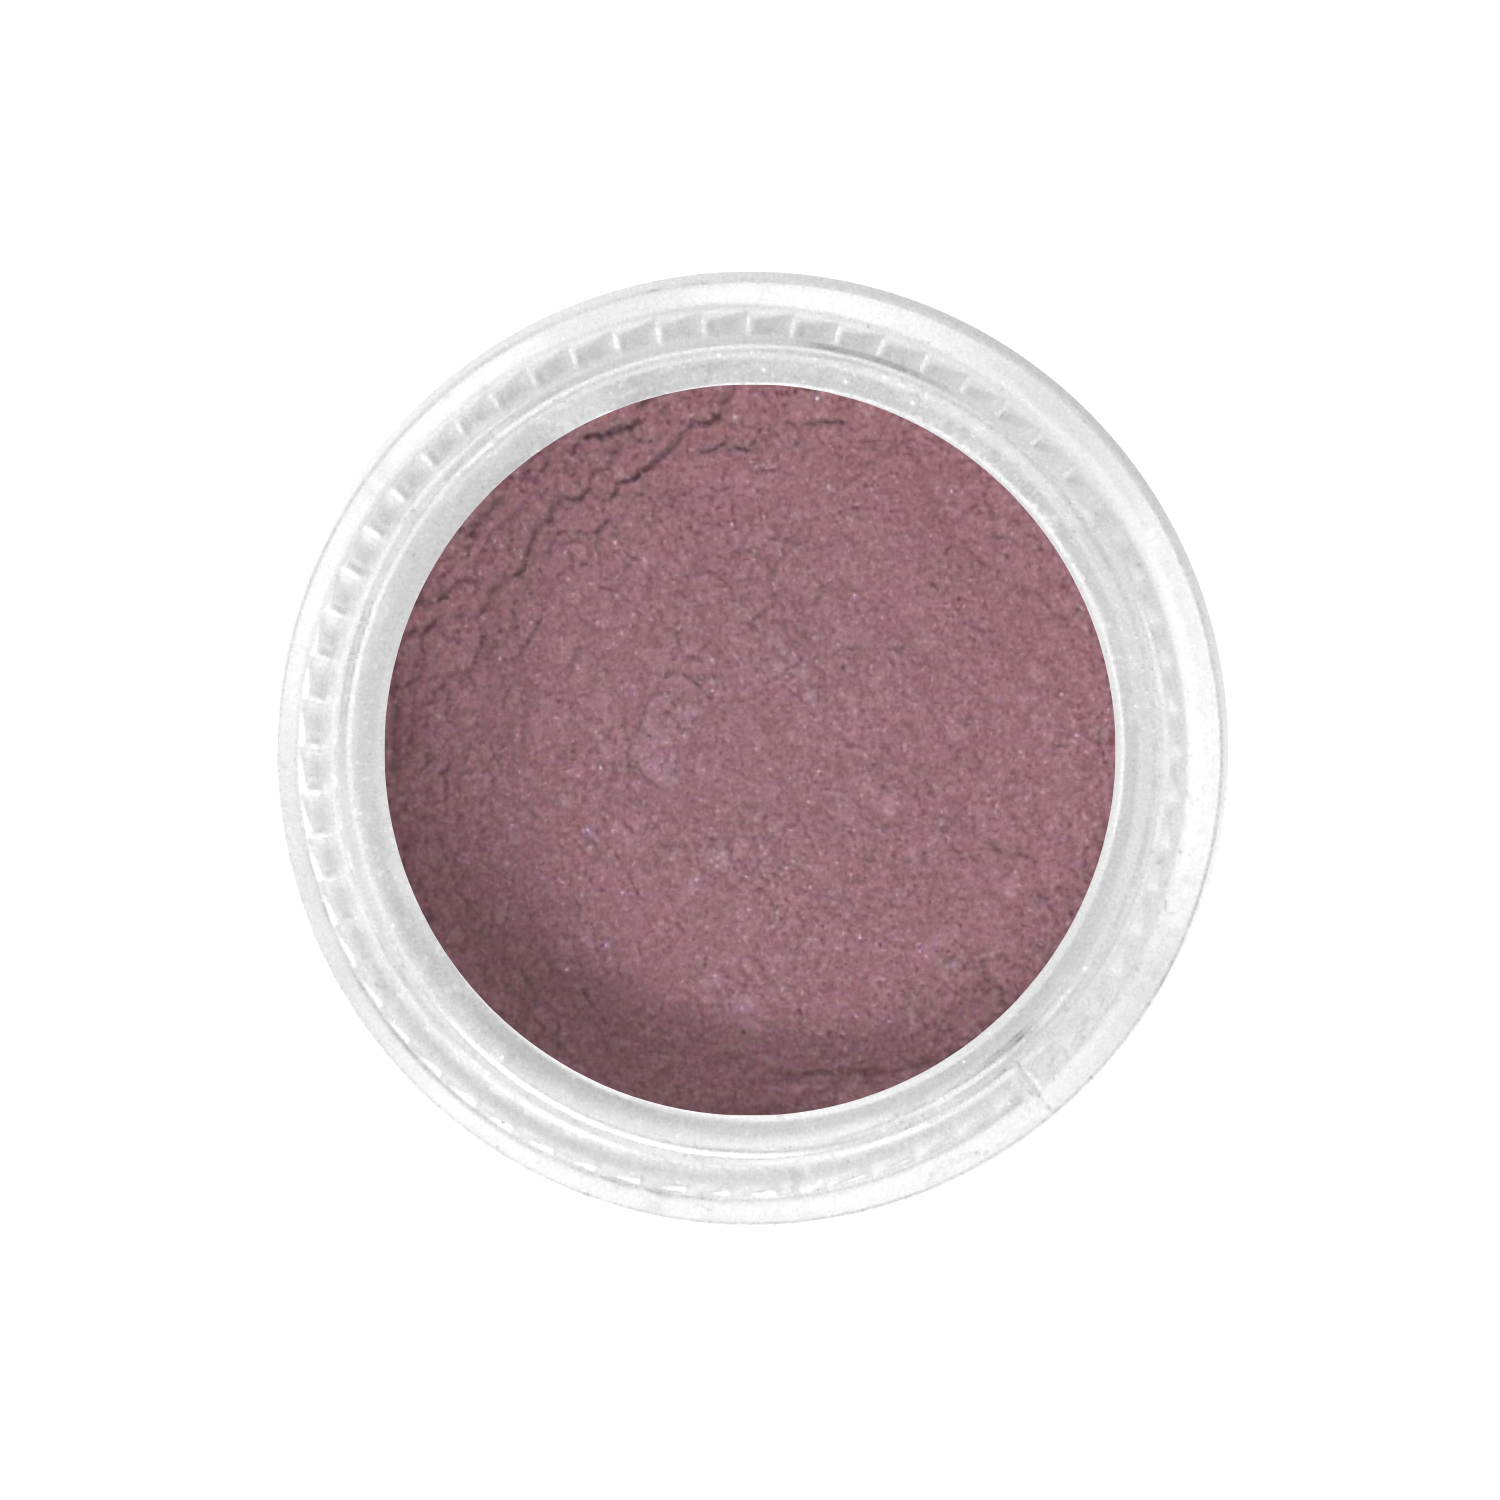 Loose Mineral Eye Shadow in Mallow